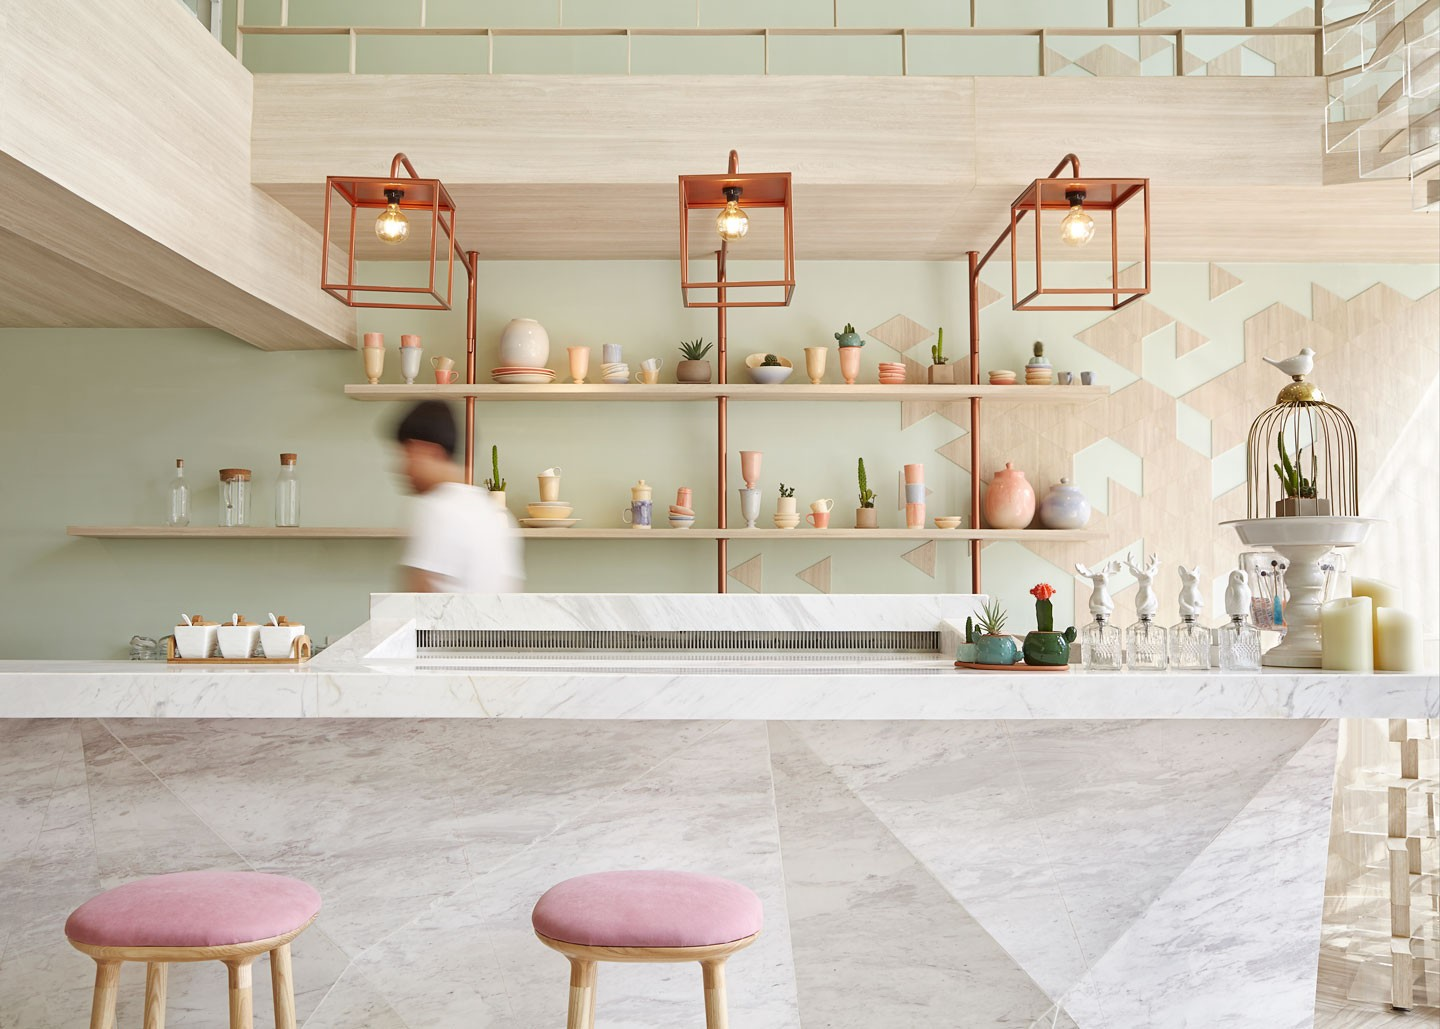 Shugaa dessert bar | interior design inspired by sugar crystals